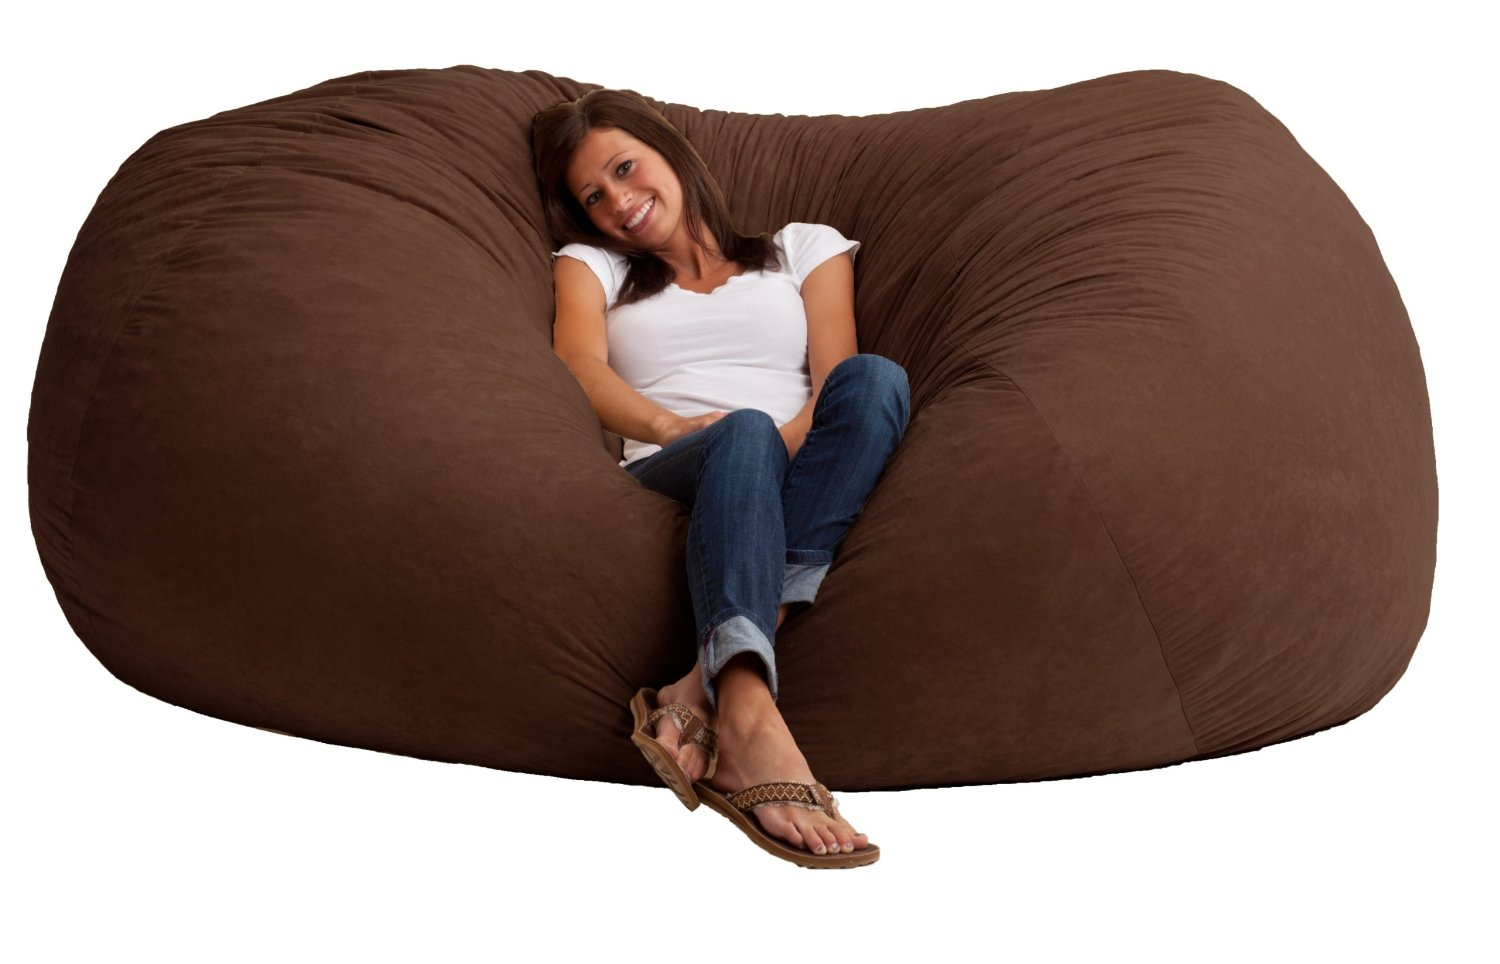 Love Sac Bean Bag Chair Lovesac Vs Sumo Homeverity